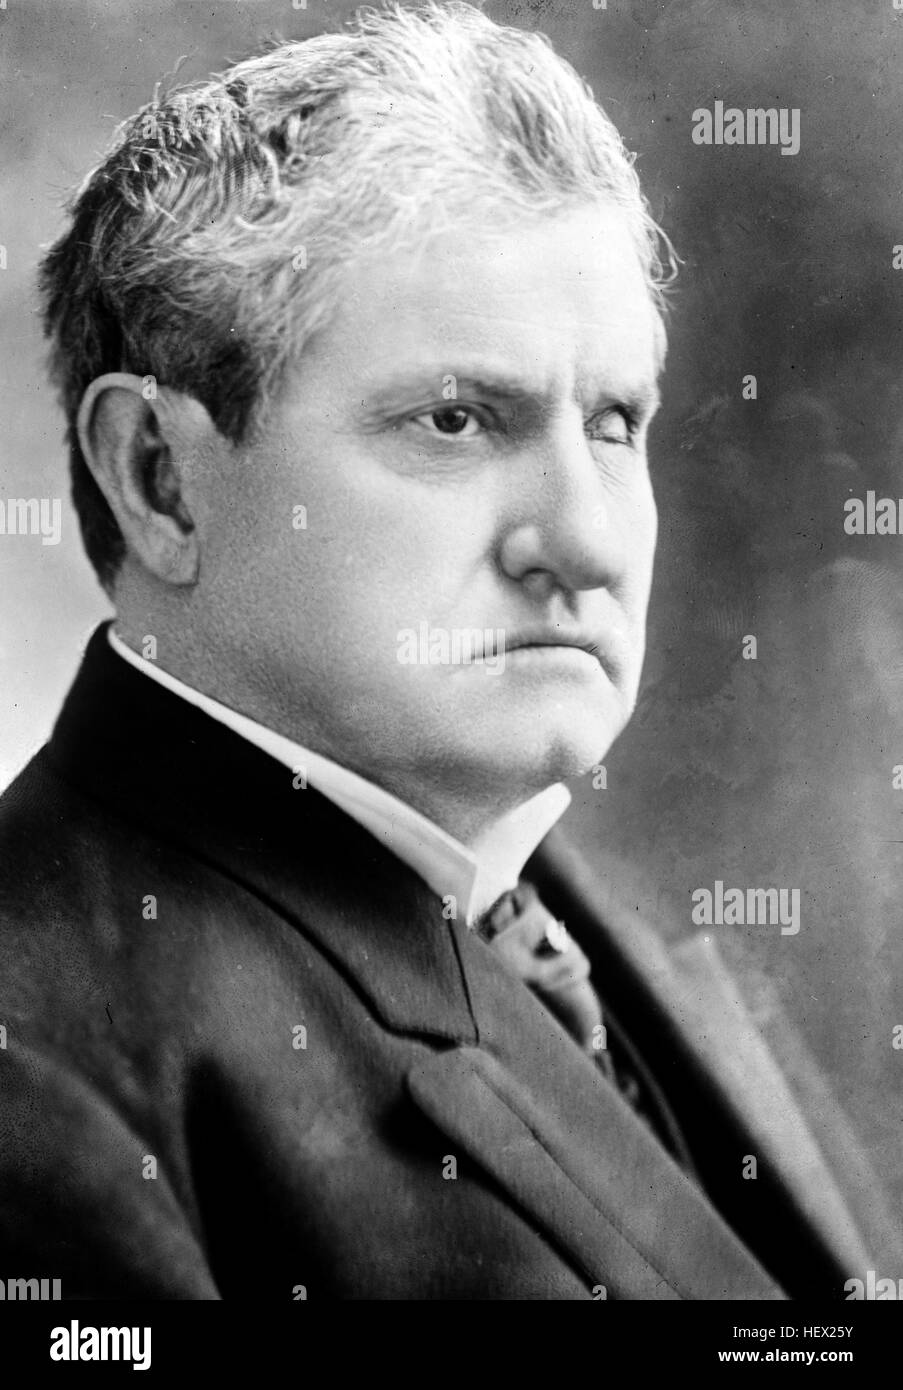 BENJAMIN TILLMAN (1847-1918) US Democratic Senator about 1910 - Stock Image